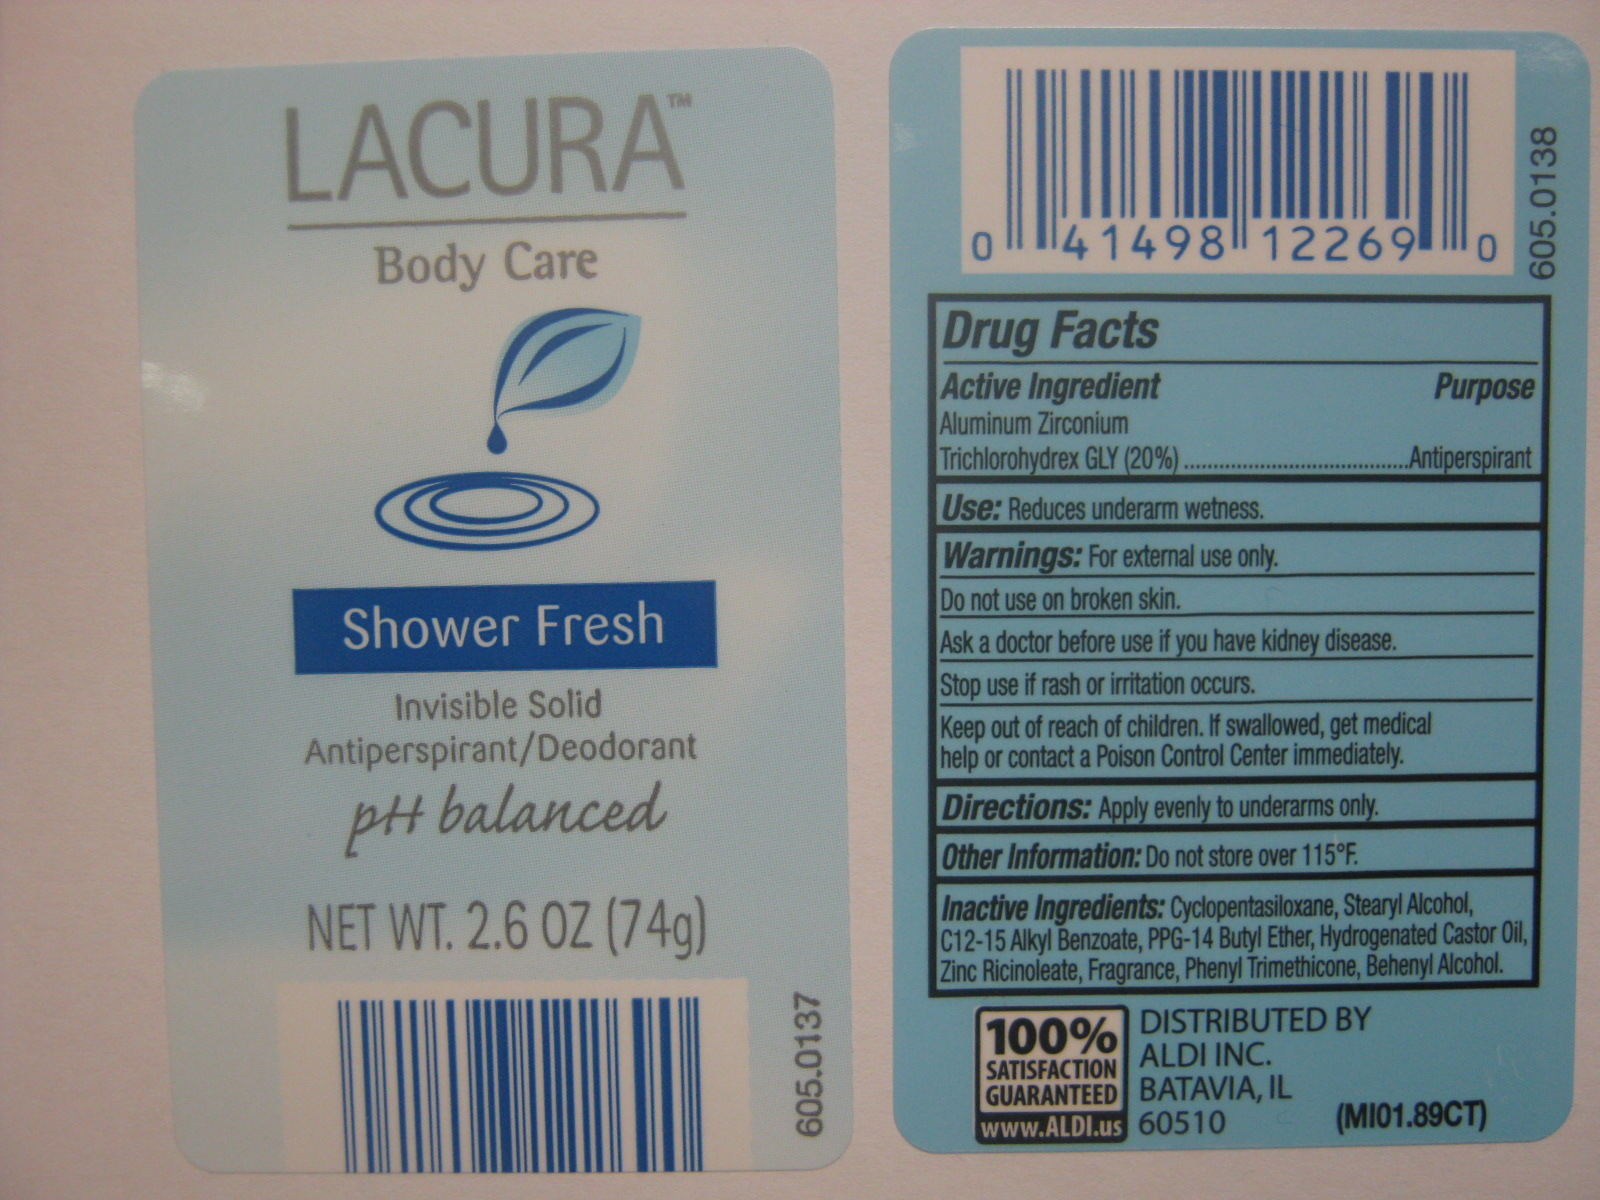 LacuraInvisibleSolidShowerFresh Label